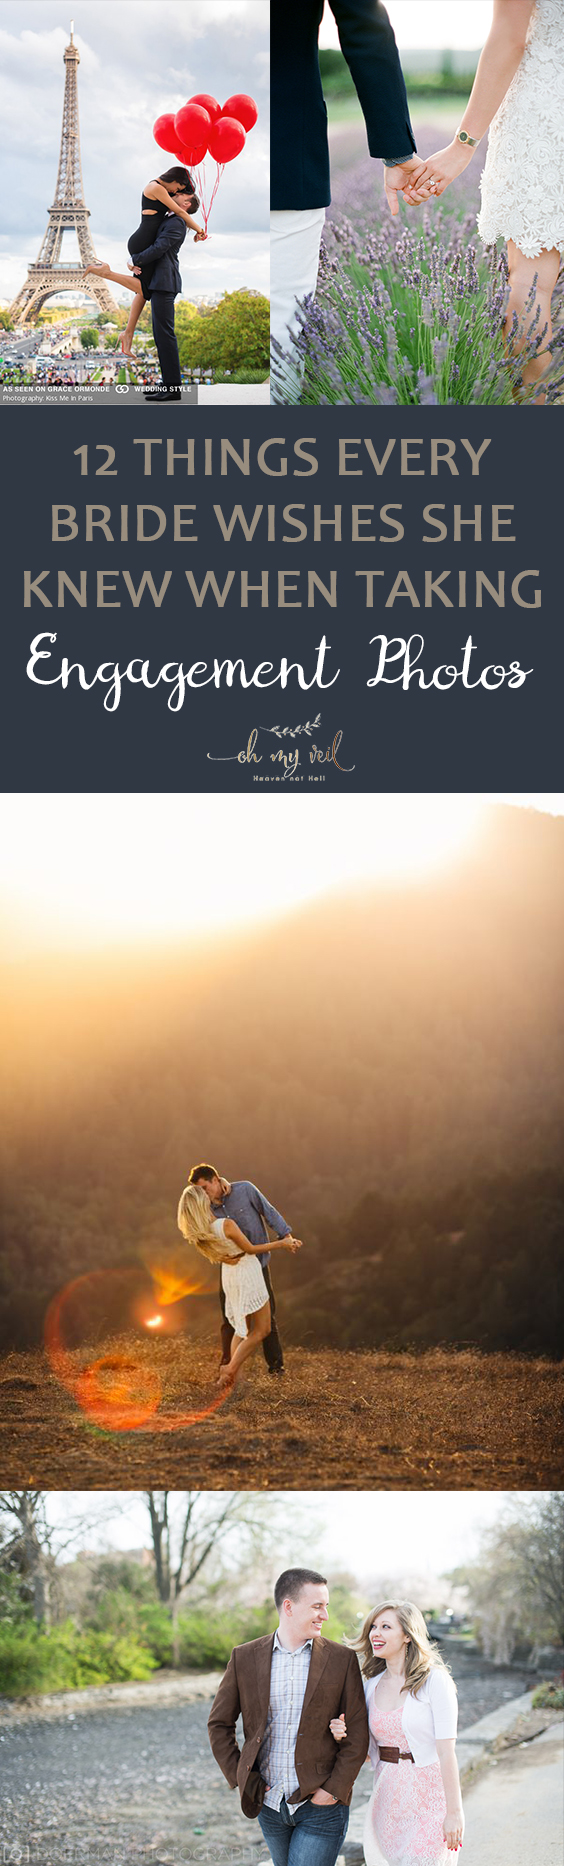 Taking Engagement Photos | Tips and Tricks for Taking Engagement Photos | Engagement Photos | Engagement | Wedding Planning | Wedding Photos